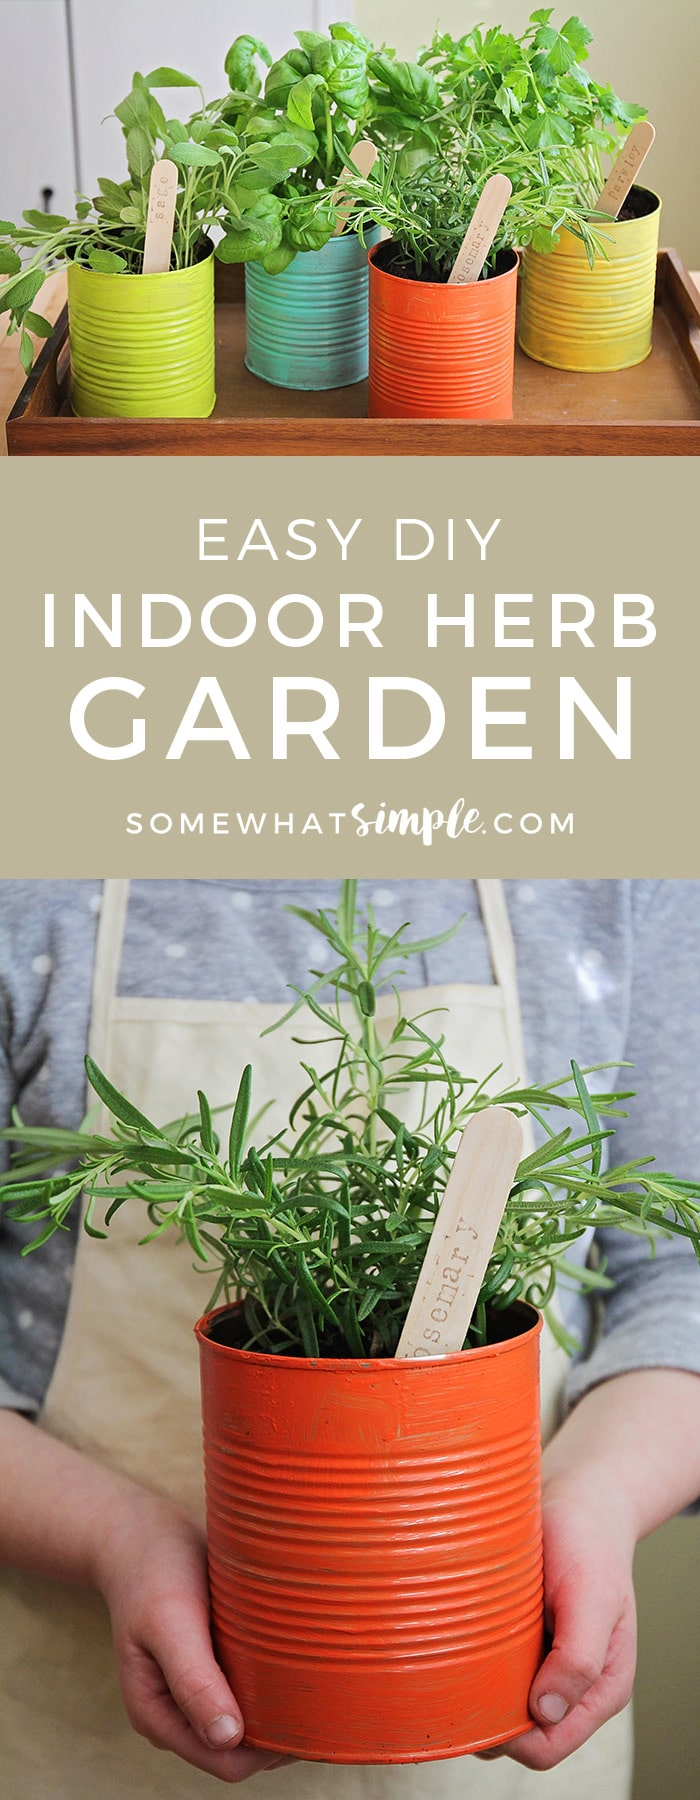 This easy to make indoor herb garden is the perfect project to do with the kids. Add a touch of green to your kitchen and enjoy fresh herbs year round! #gardening #gardenideas #gardeningtips #herb #easydiy #summertime  via @somewhatsimple